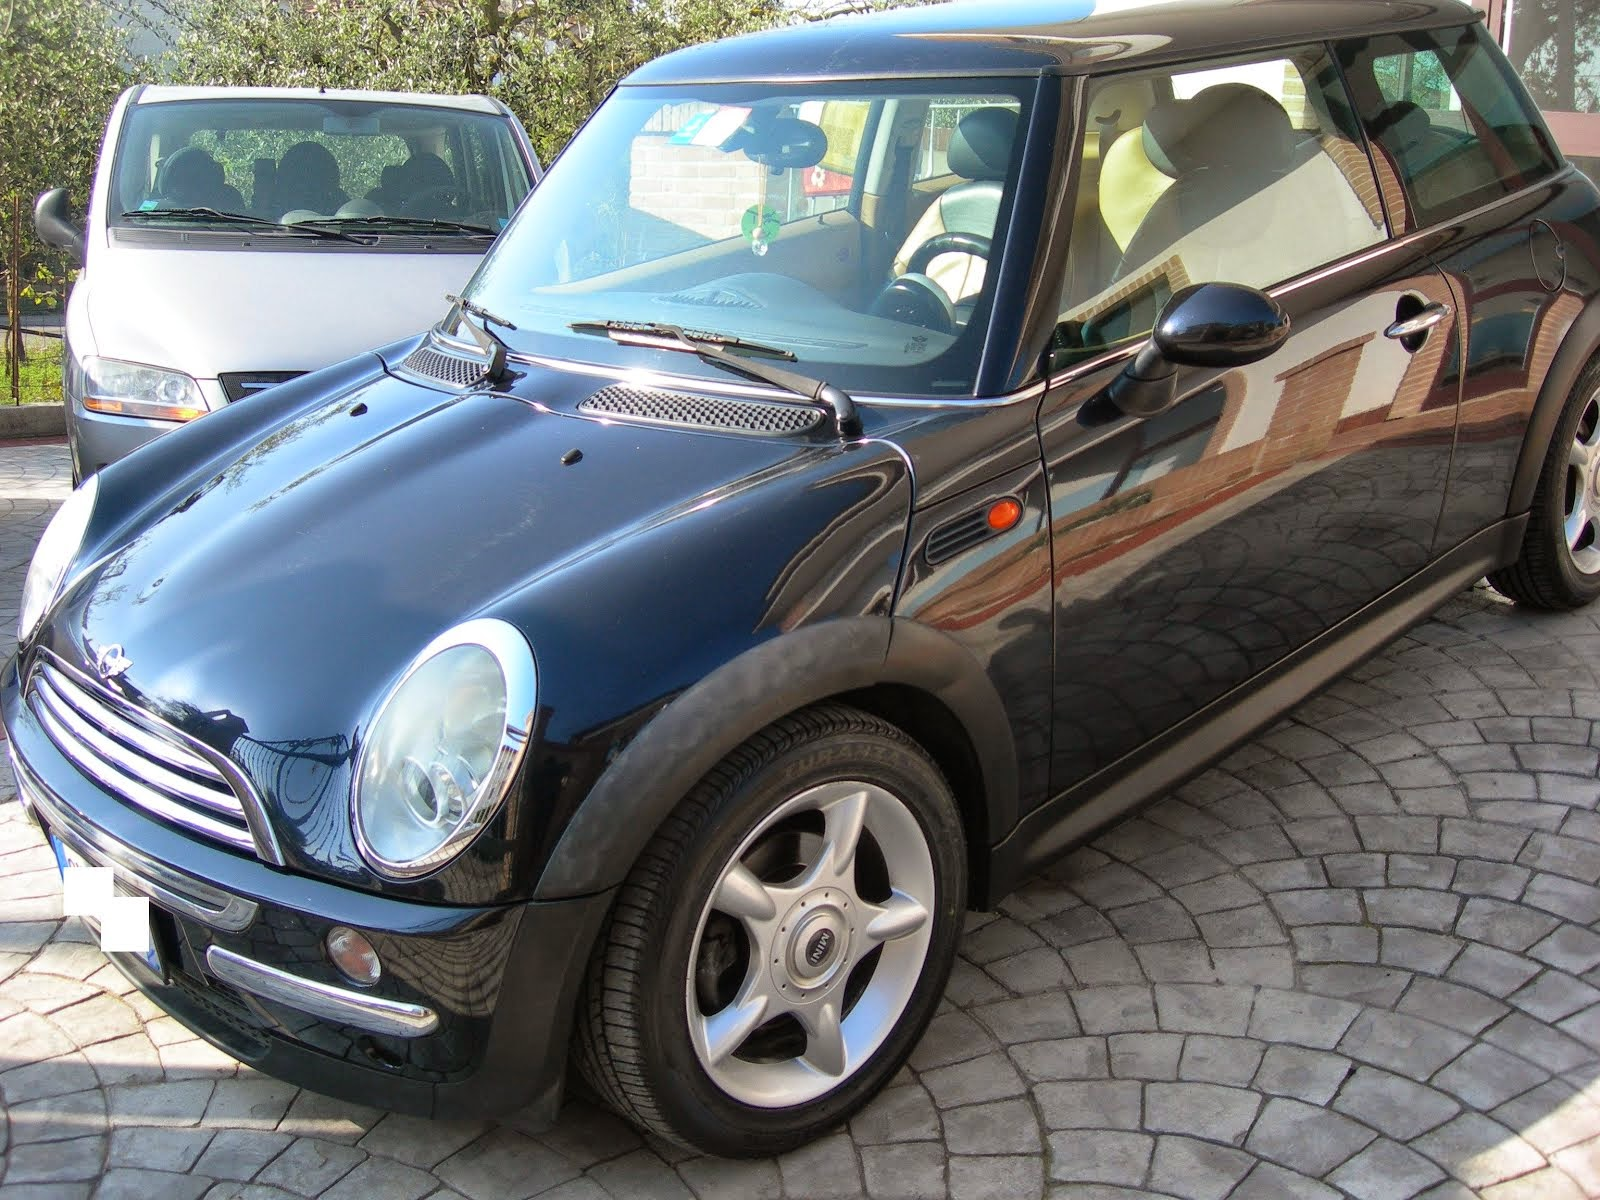 Mini One 1.4 TDi 55 Kw de luxe 2005 5.300,00 Euro